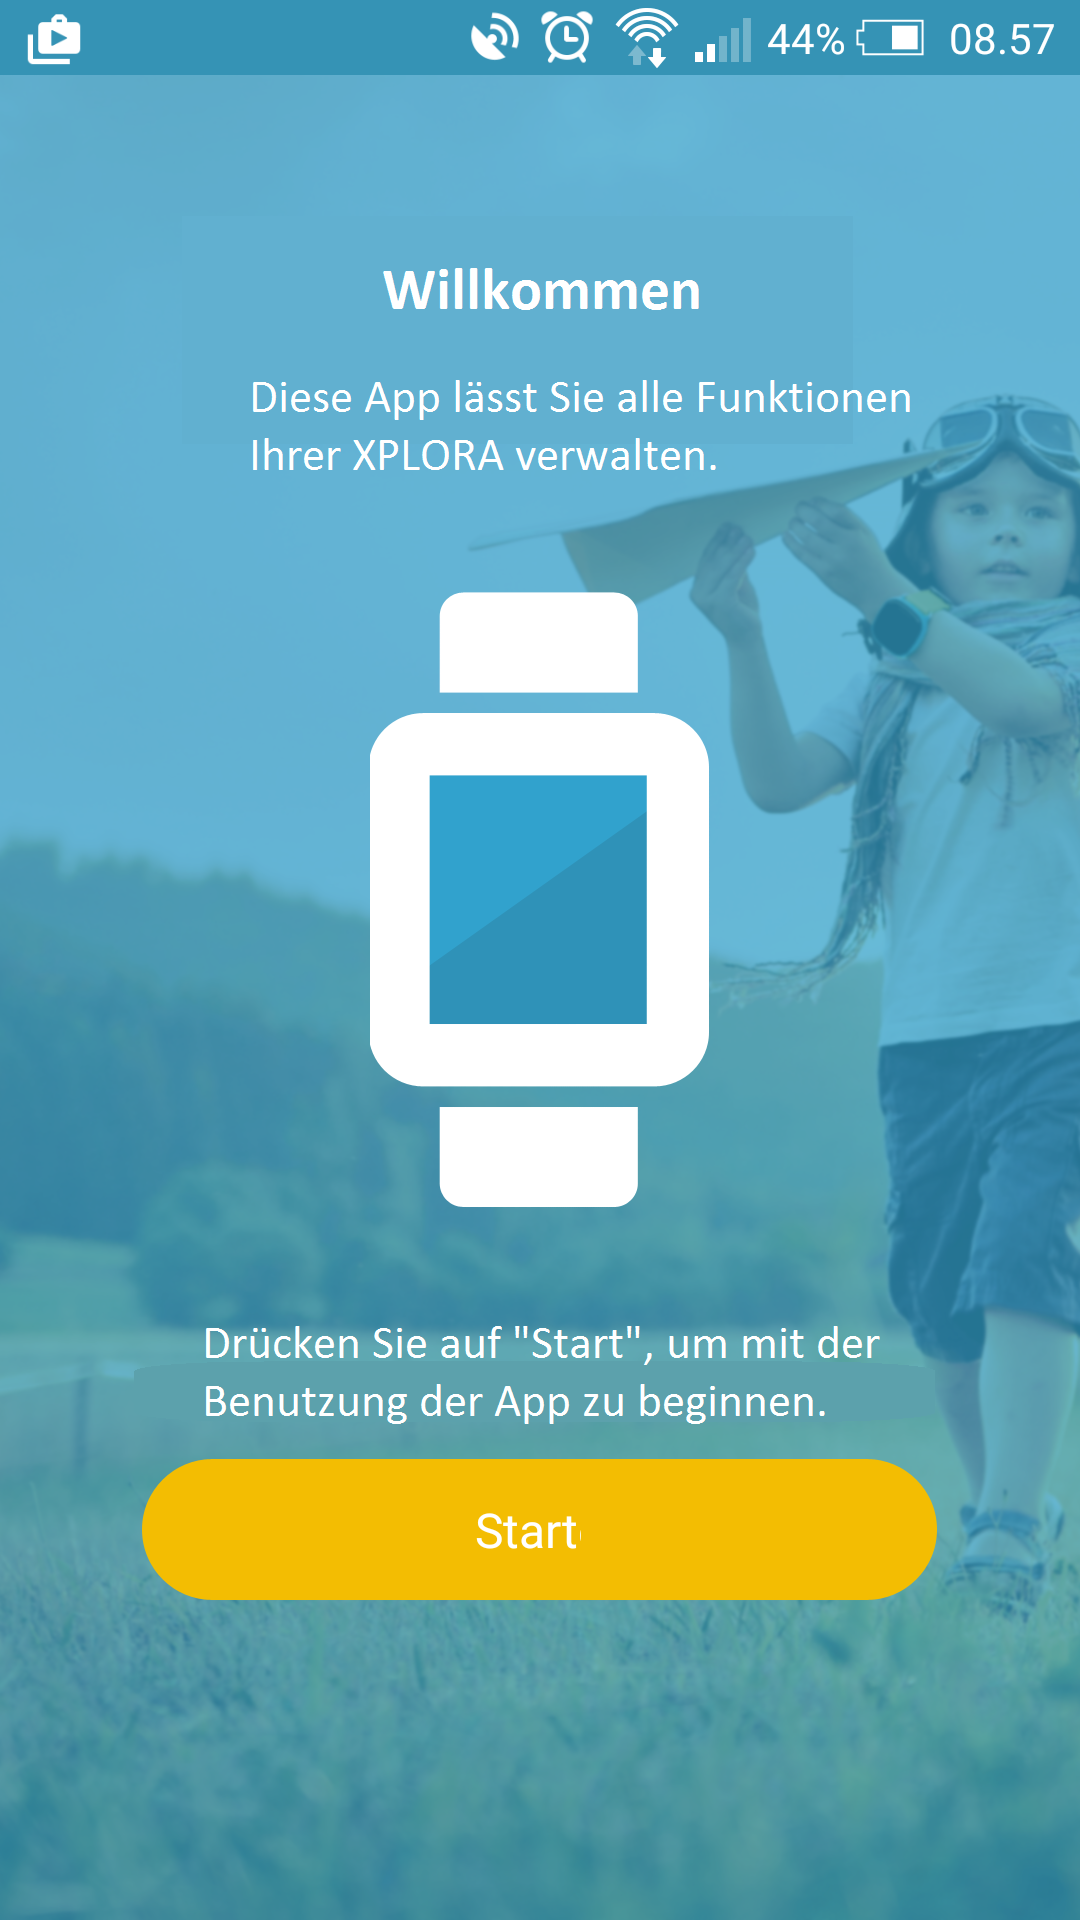 app_firststart_DE.png